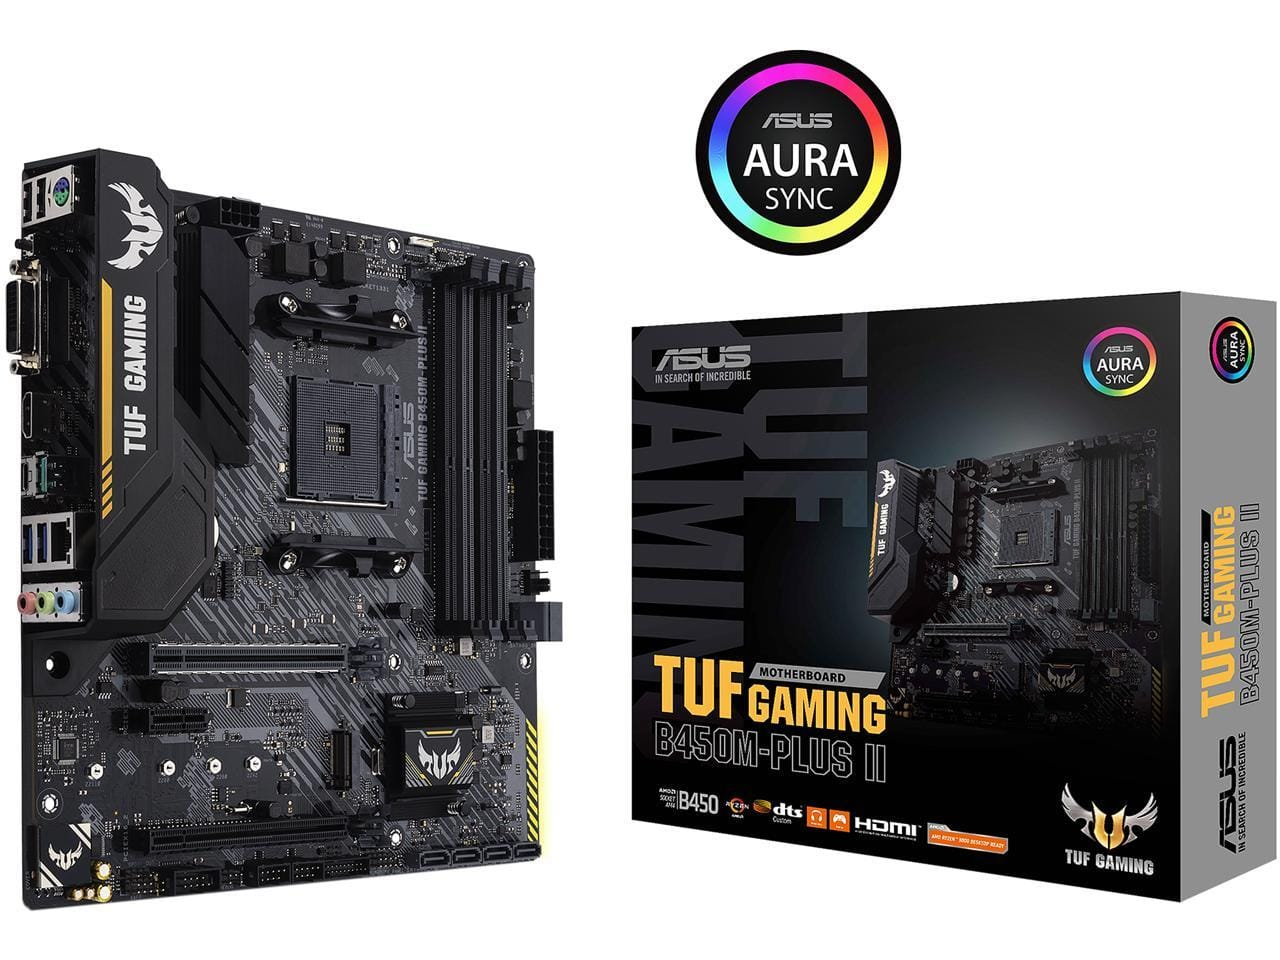 ASUS TUF GAMING B450M-PLUS II AM4 AMD B450 SATA 6Gb/s Micro ATX AMD Motherboard FOR $79.99+FS